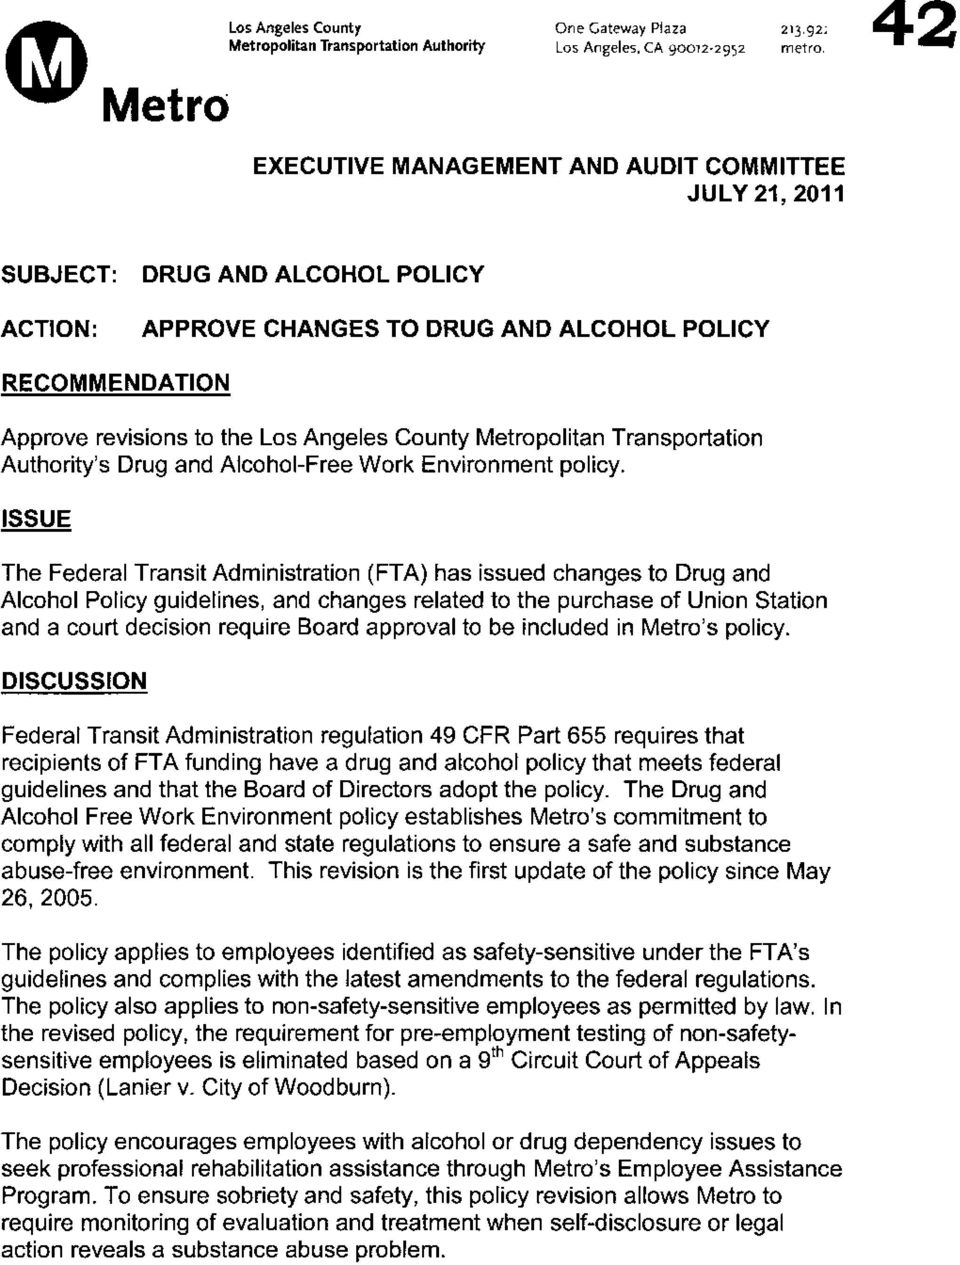 Metropolitan Transportation Authority's Drug and Alcohol-Free Work Environment policy.